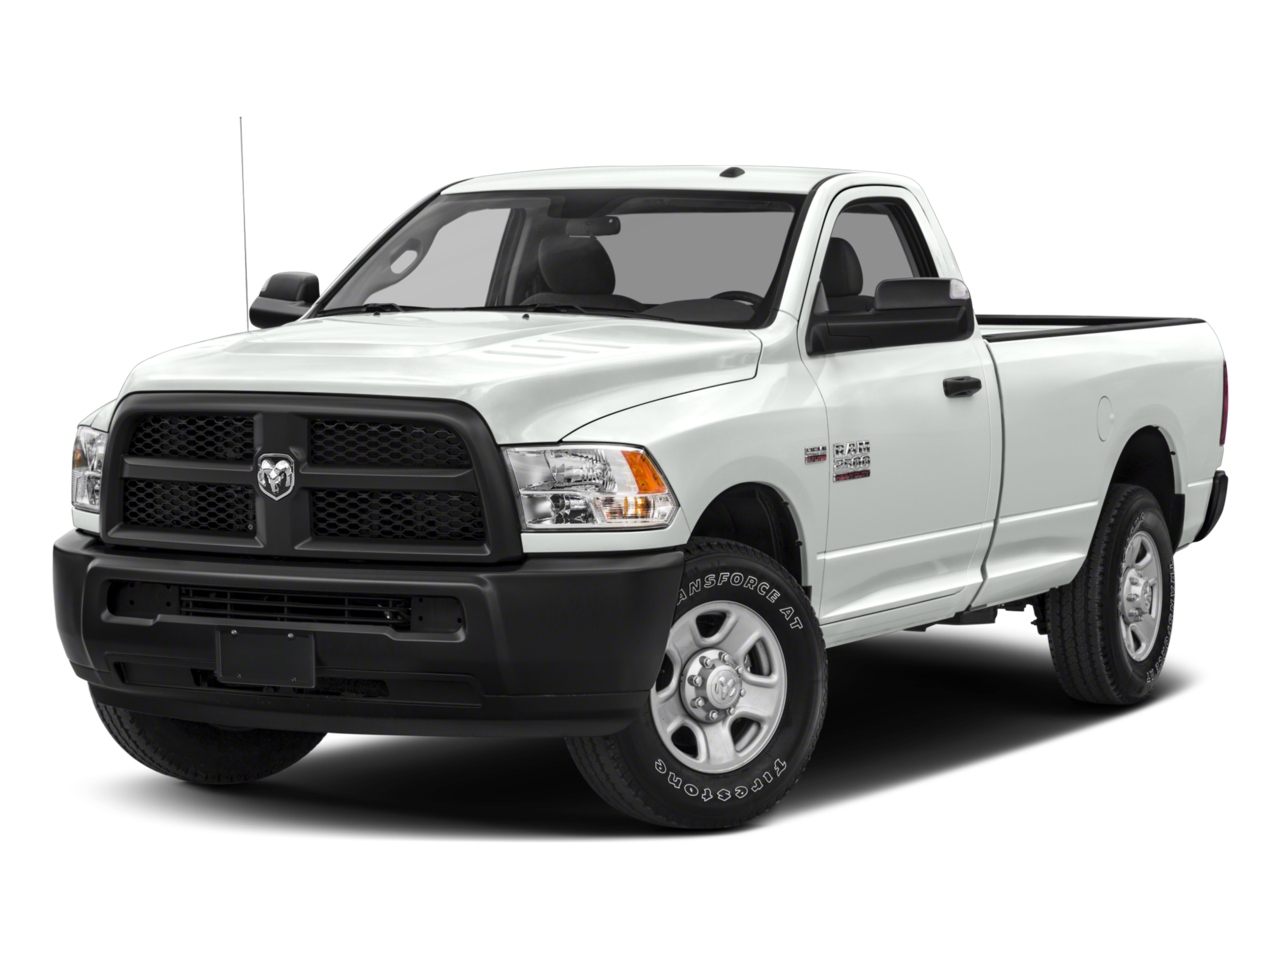 Buyer's Guide: 2018 Ram 2500